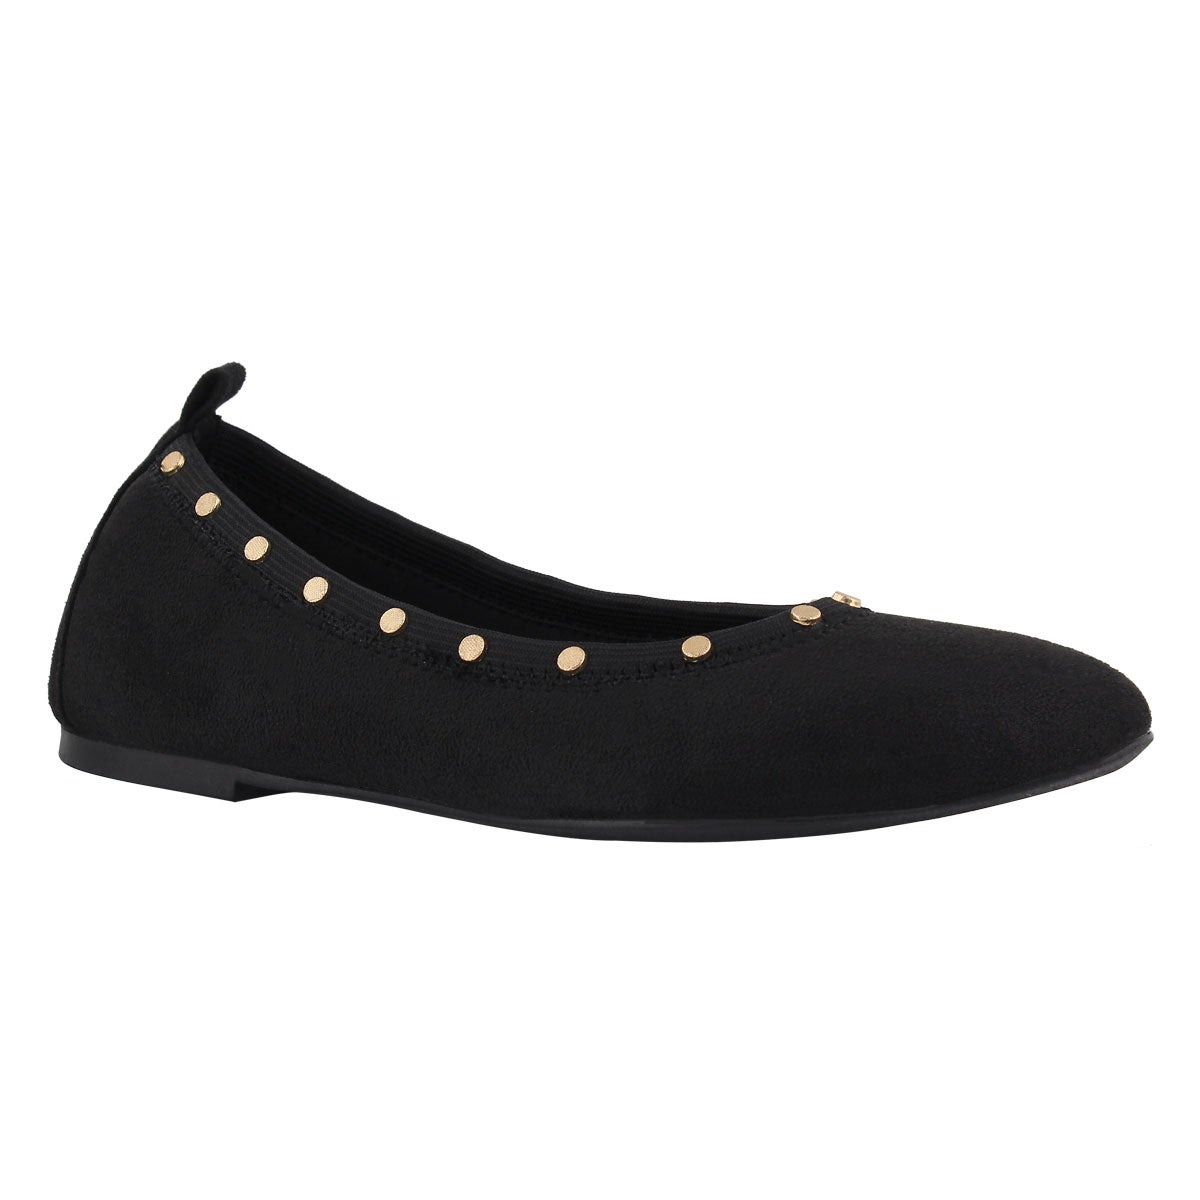 Lds Cleo Regent blk studded casual flat